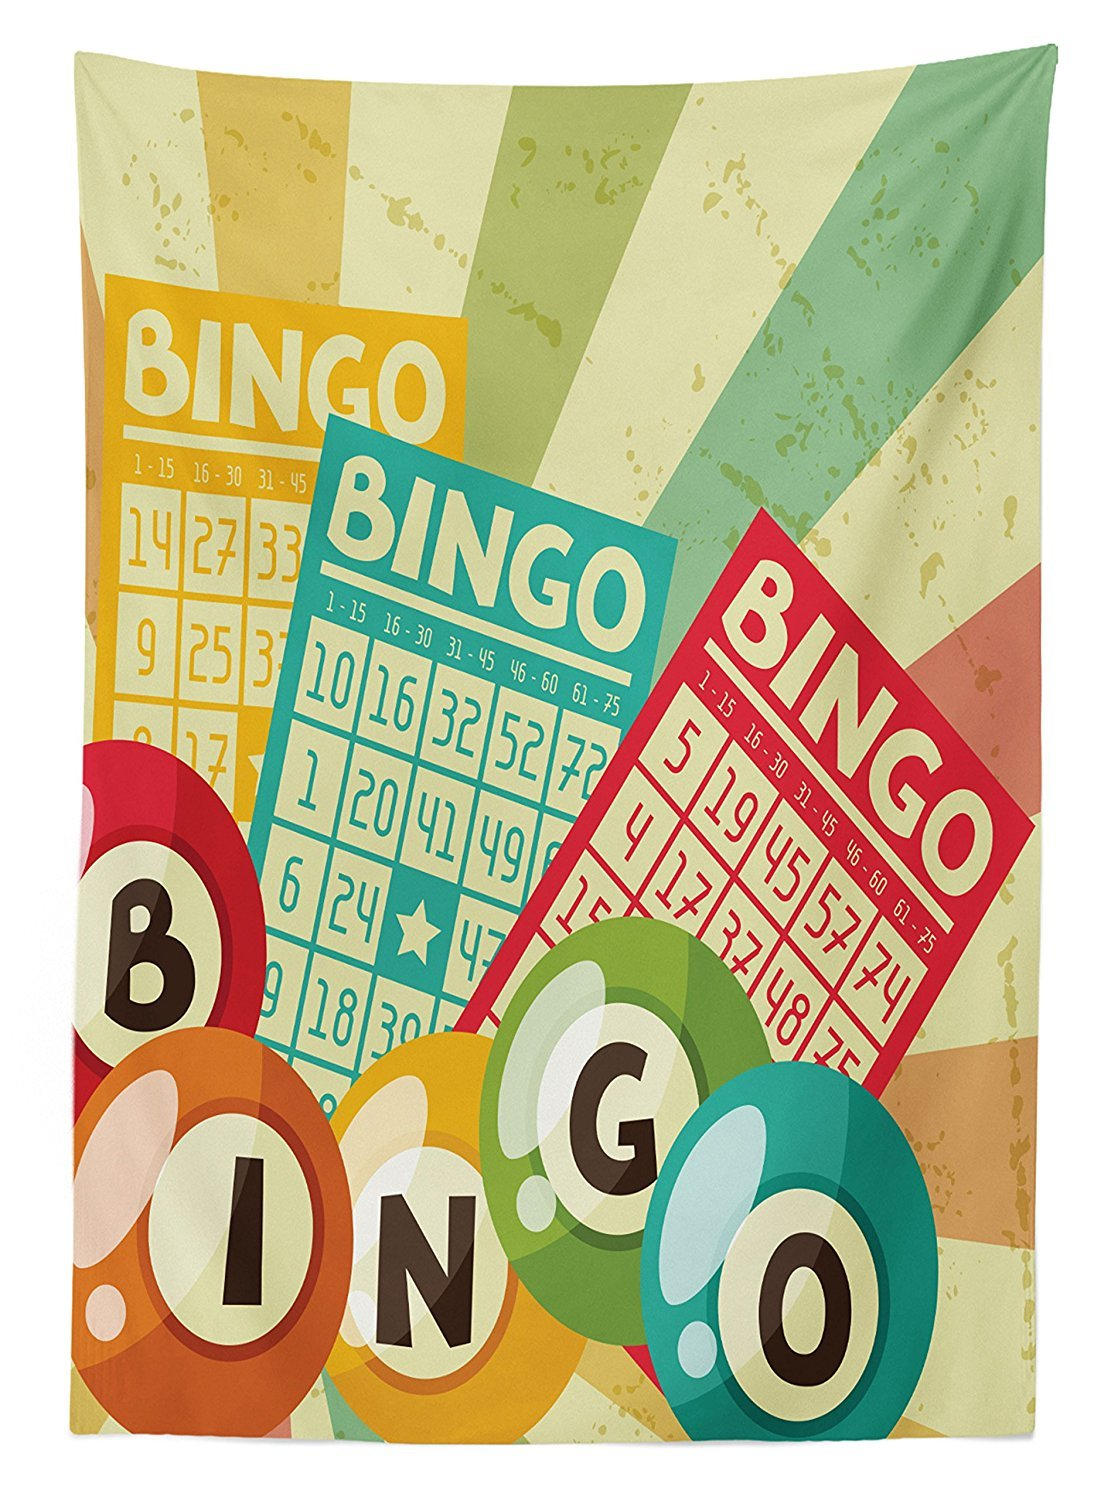 Vintage Decor Tablecloth Bingo Game with Ball and Cards Pop Art Stylized Lottery Hobby Celebration Theme Dining Room Kitchen Rectangular Table Cover Multi by vipsung